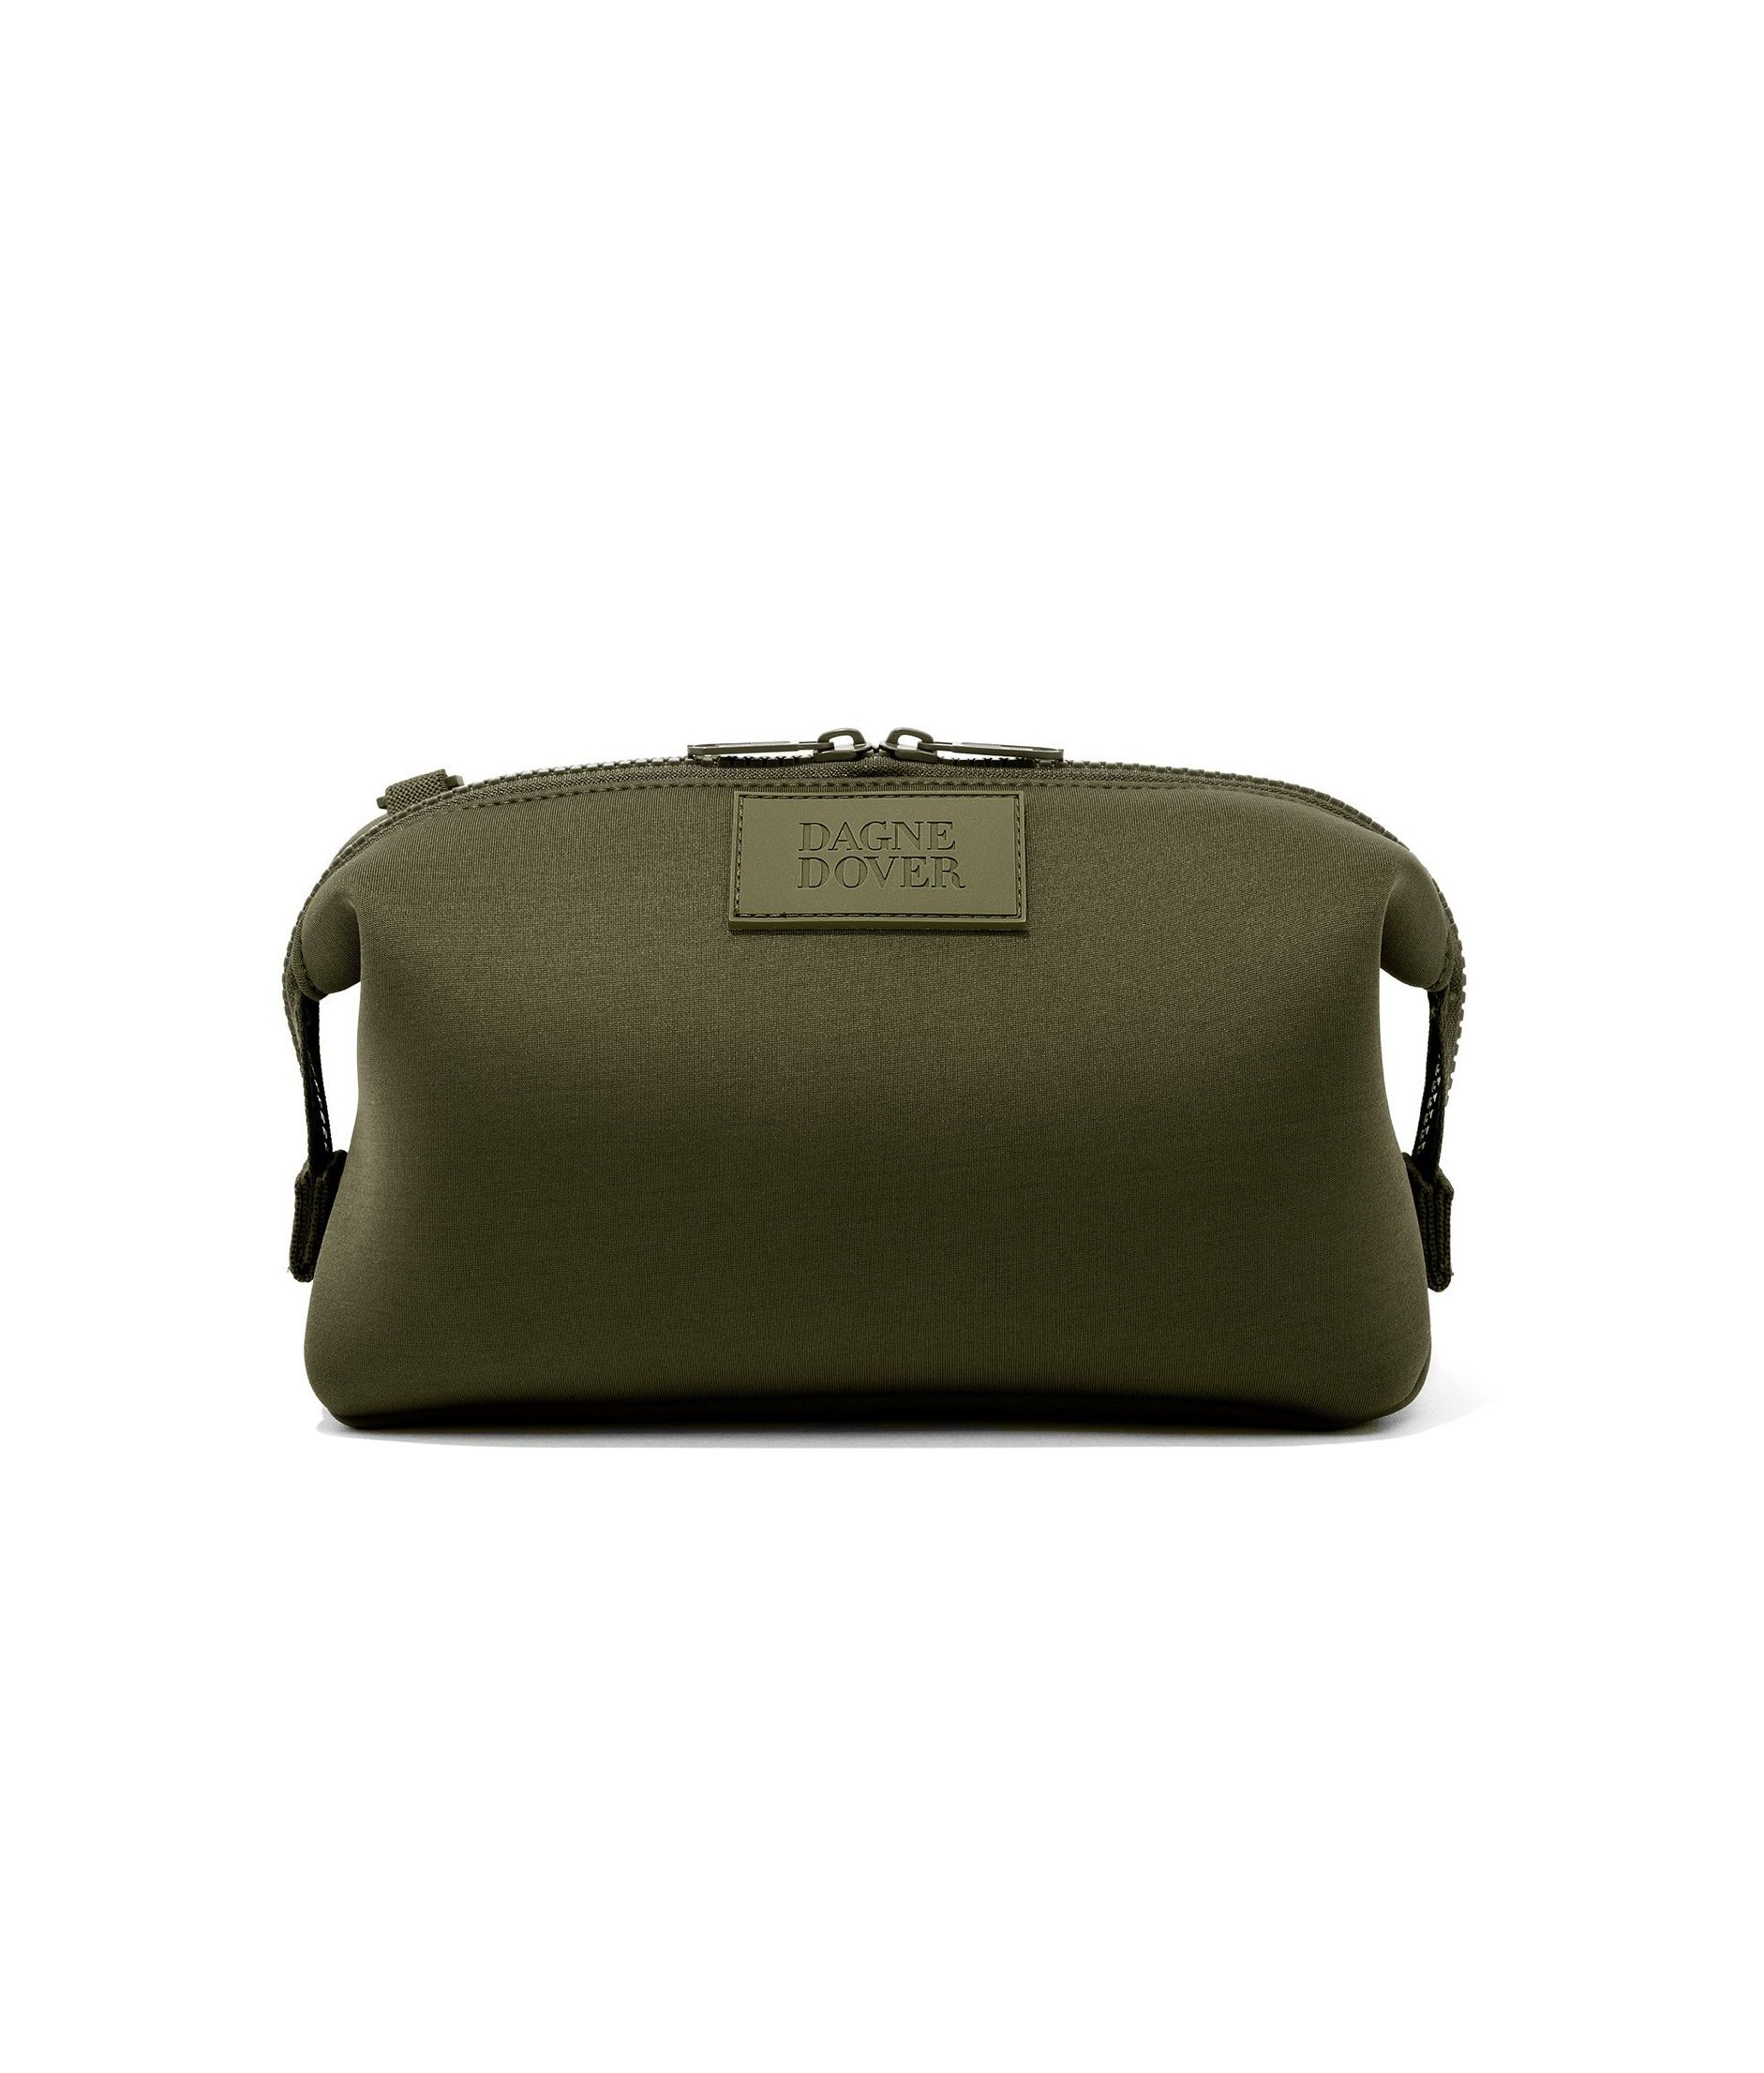 14ac4e9613 Dagne Dover s Best-Selling Bags That Will Change Your Life and Keep You  Organized